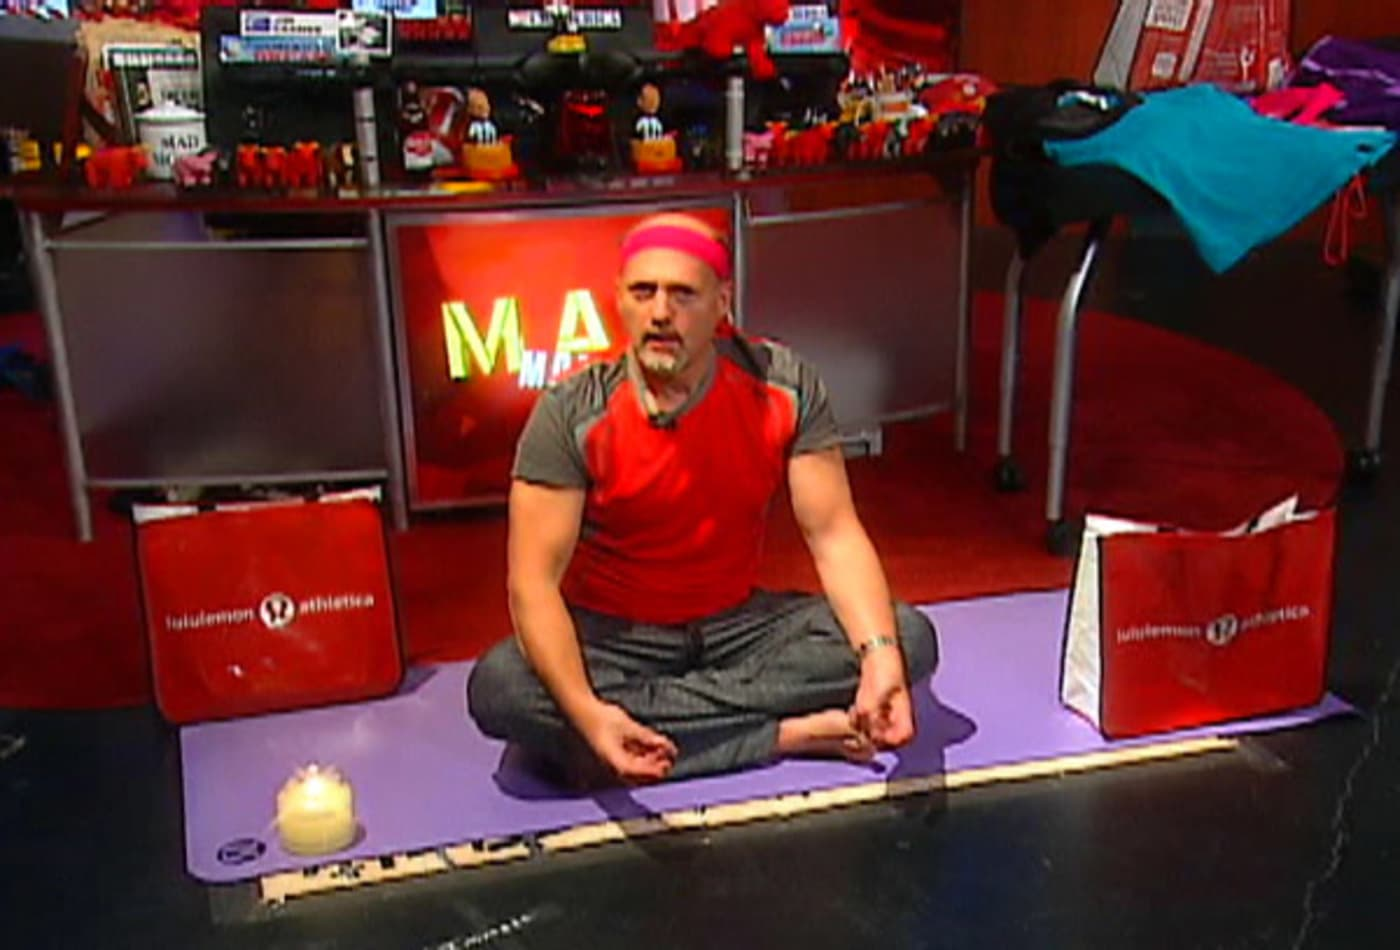 Yoga-Craziest-Costume-Ideas-Jim-Cramer.jpg